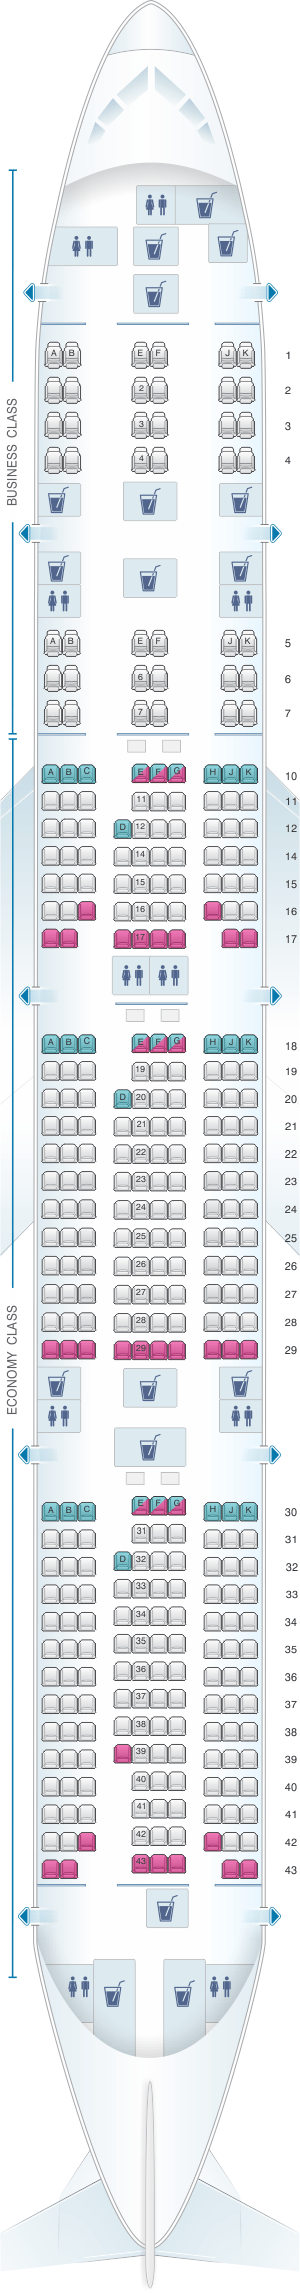 Boeing 777 seating chart qatar for Plan cabine 777 300er